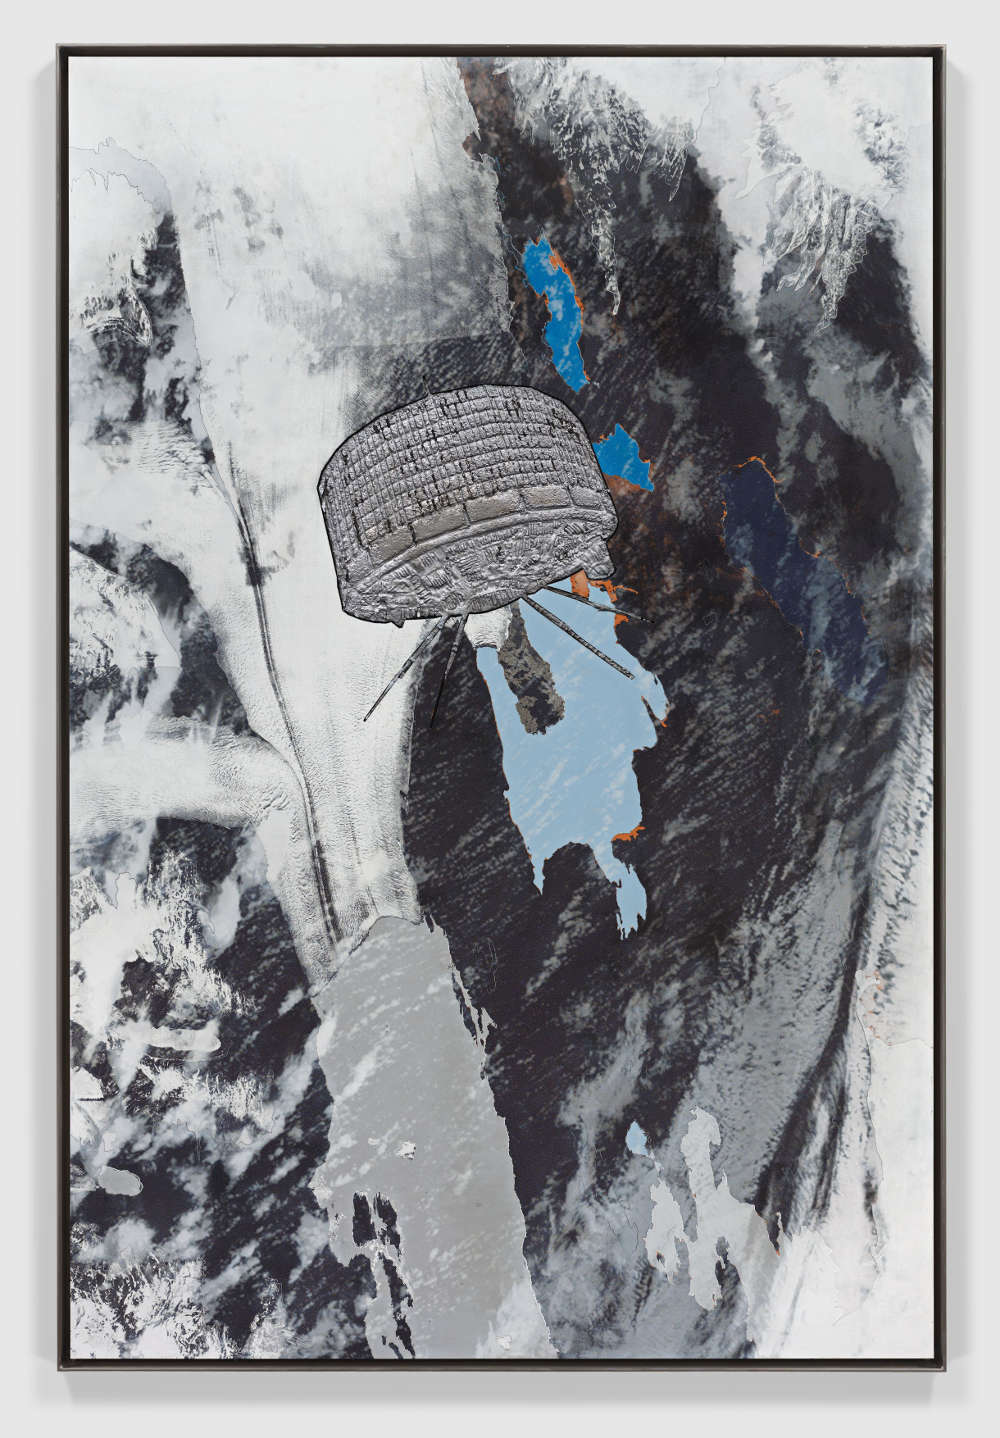 Matthew Day Jackson, Solipsist II, 2018. Formica, silkscreen, lead on panel, stainless steel frame 194.9 x 130.5 x 5.1 cm / 76 3/4 x 51 3/8 x 2 in © Matthew Day Jackson. Courtesy of the artist and Hauser & Wirth